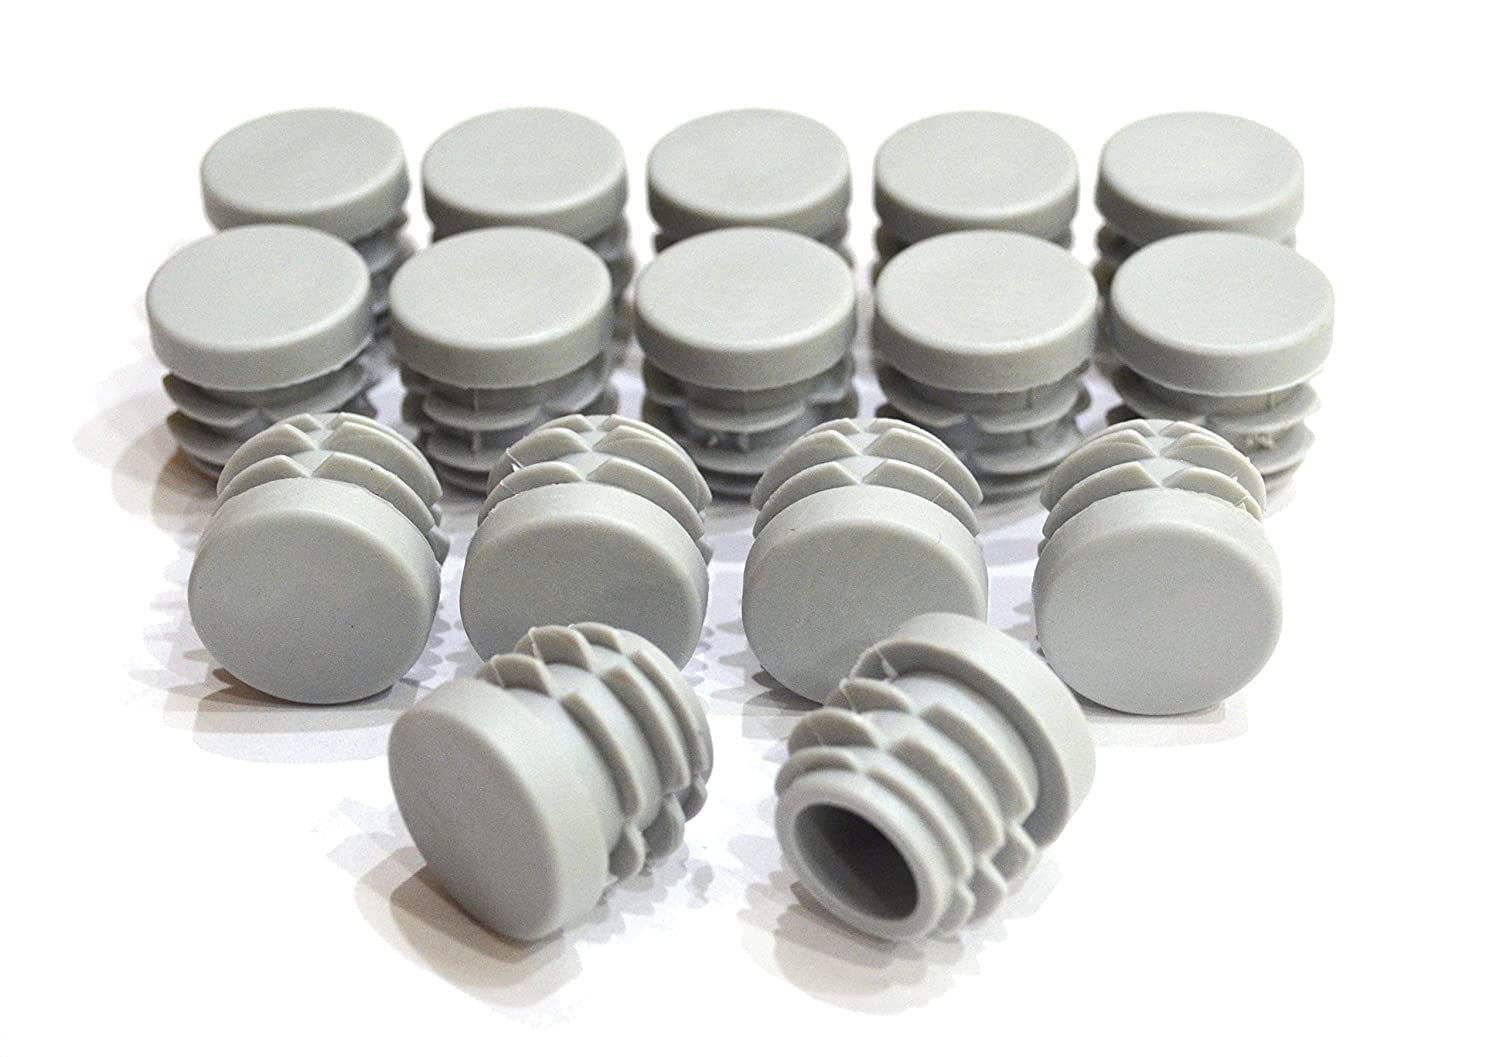 7//8 Inch Round Plastic End Cap for Hole Size from 23//32 to 13//16, Including 3//4 inches Furniture Finishing Plug Flat, Beige, 16